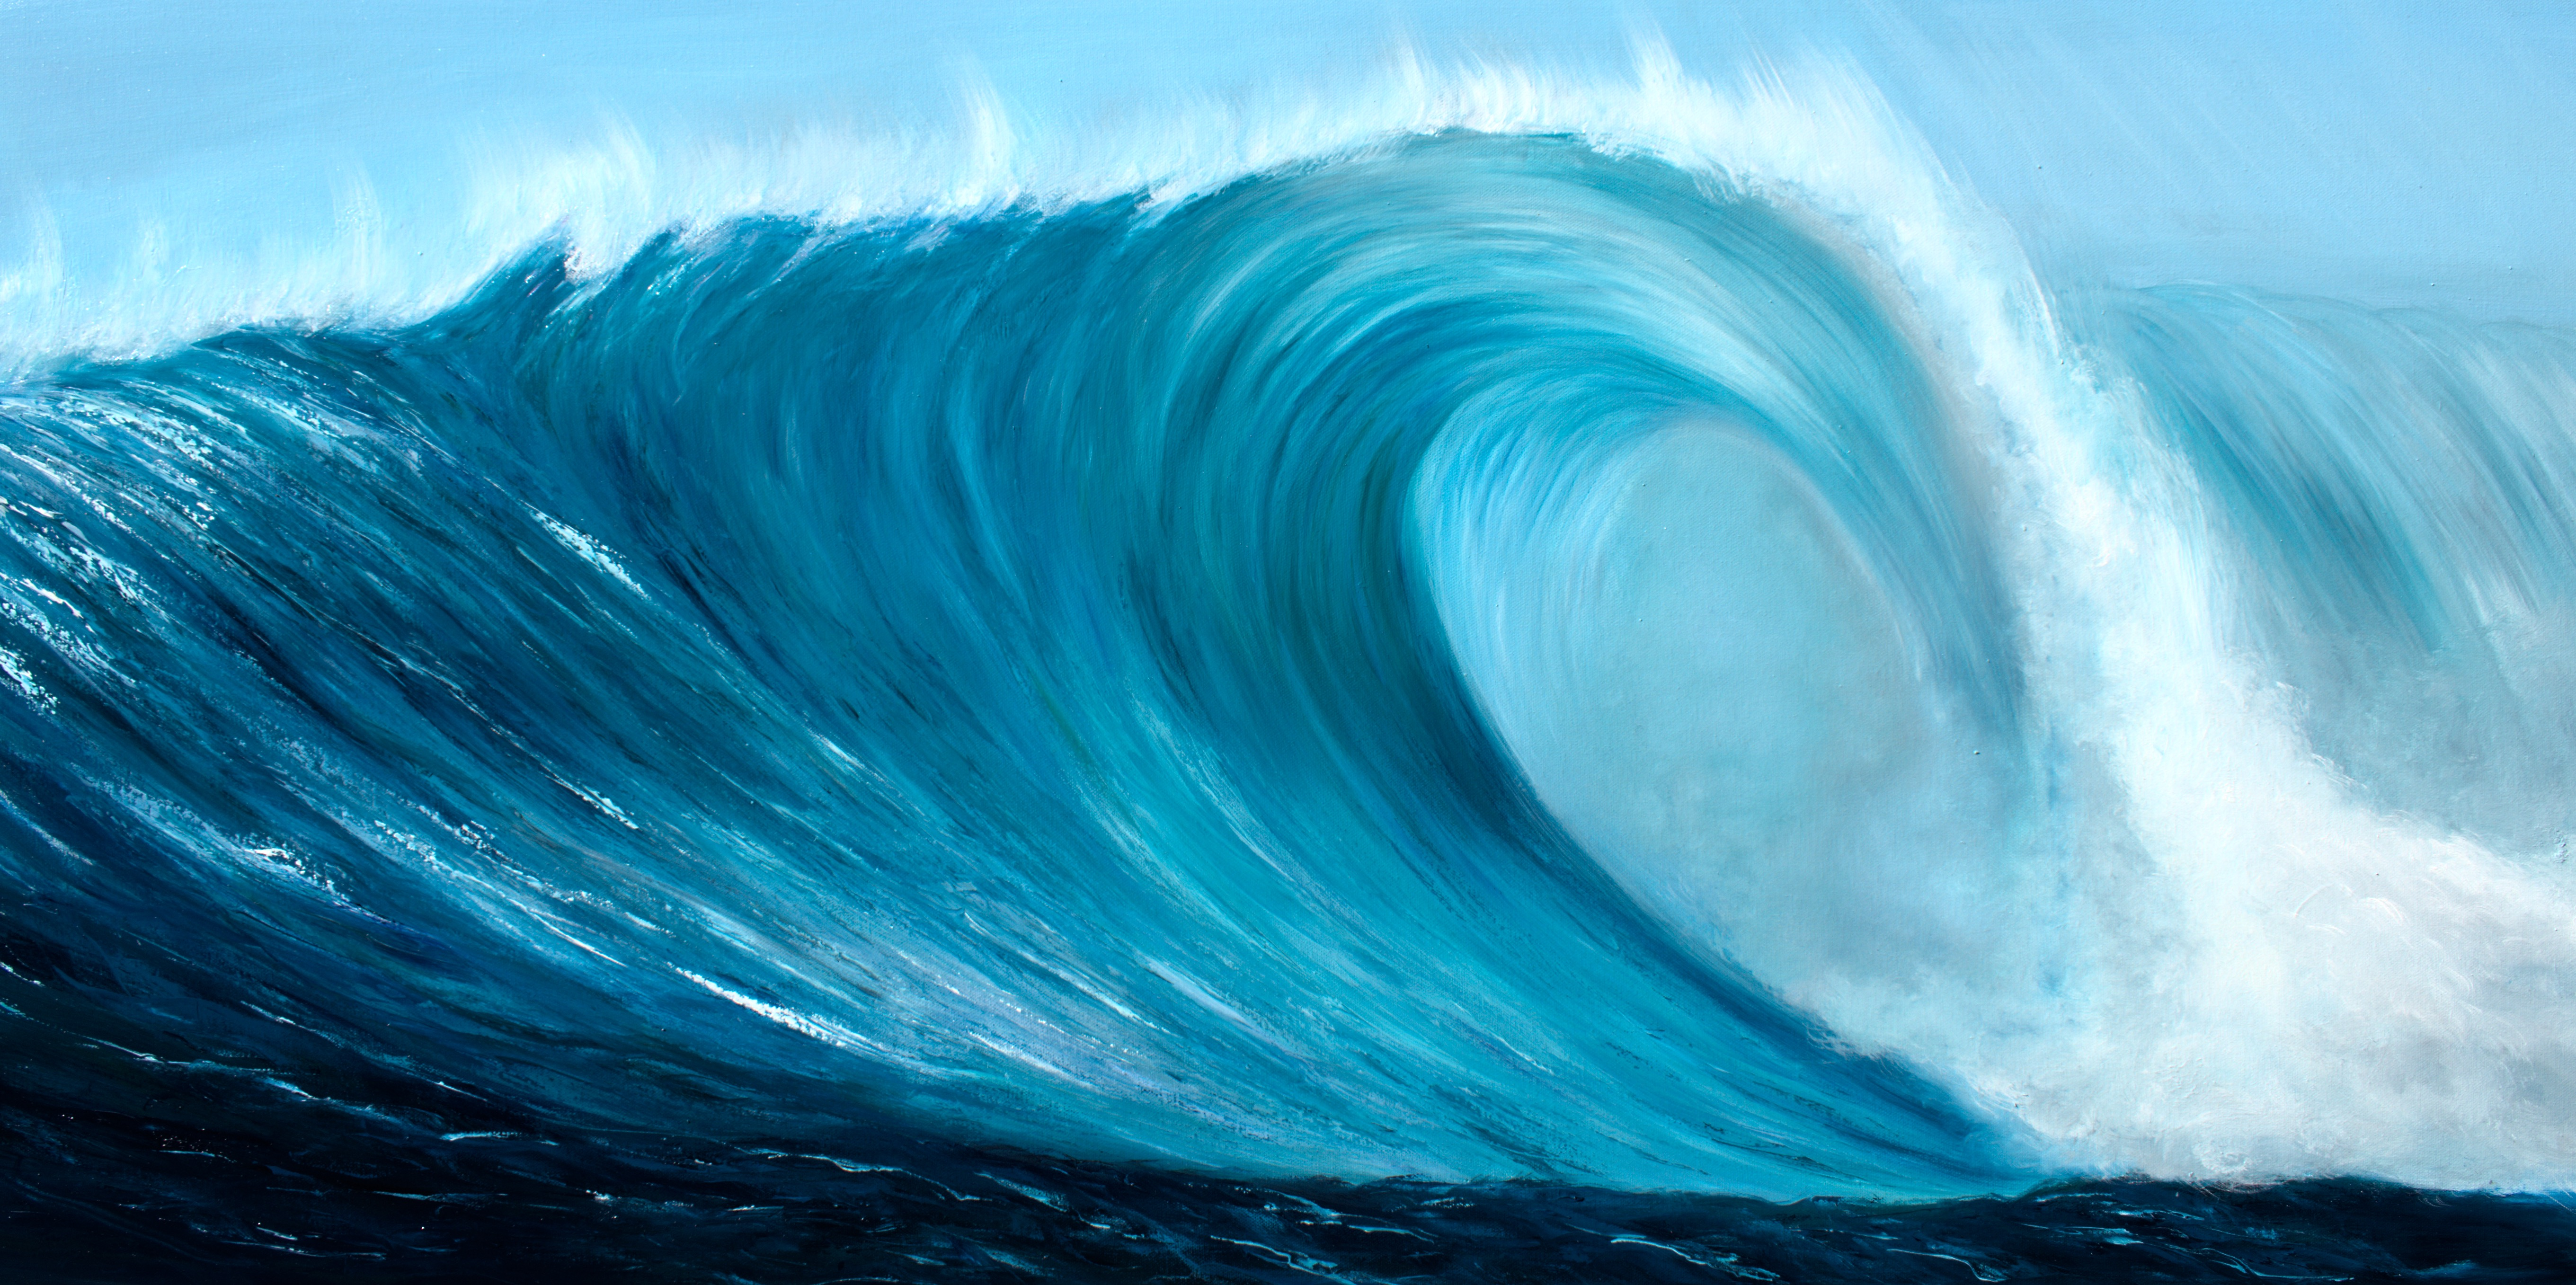 Turquoise Wave VI fine art giclee print